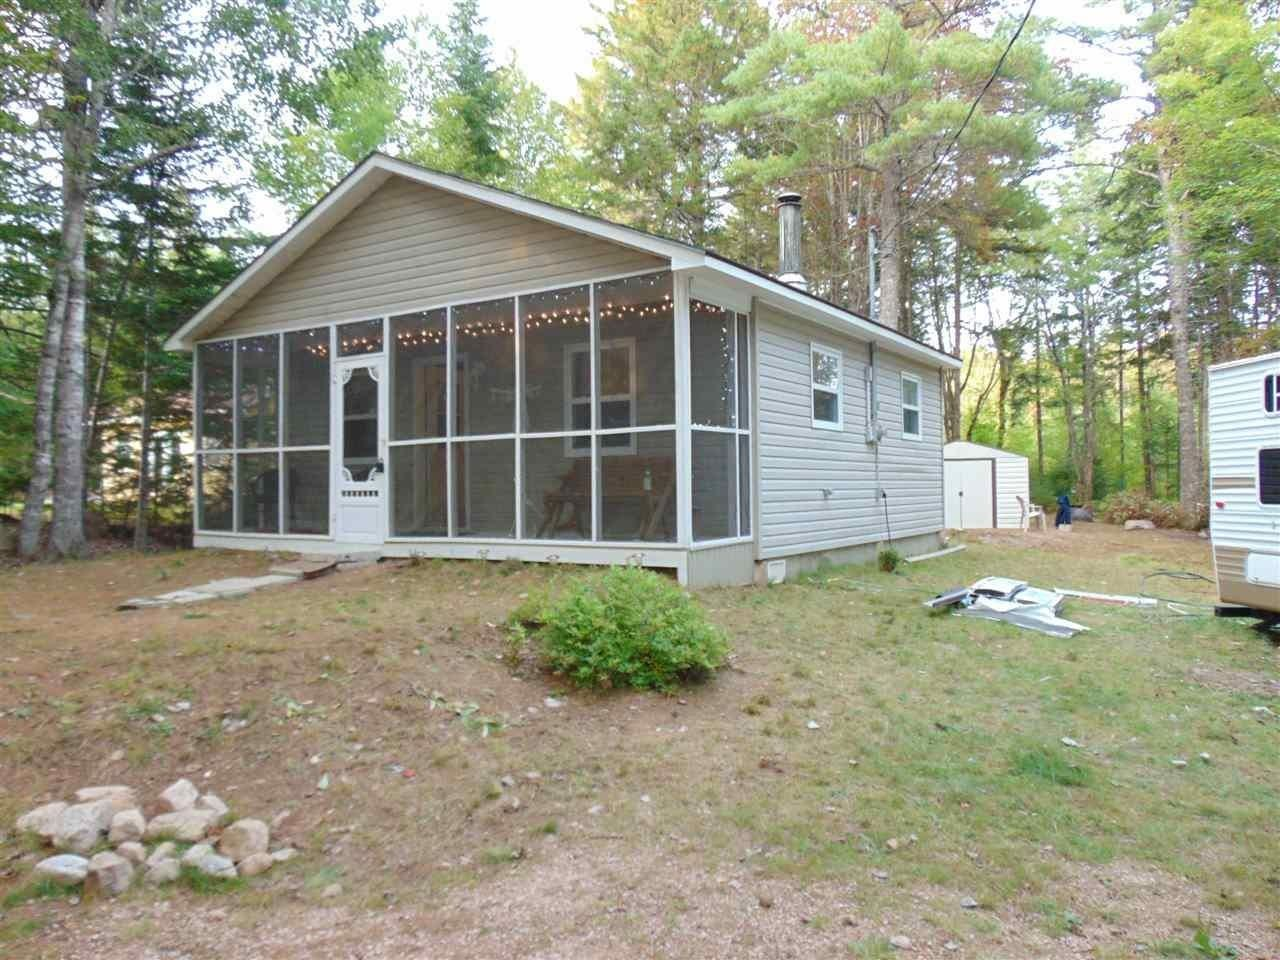 Main Photo: 632 Falkenham Road in East Dalhousie: 404-Kings County Residential for sale (Annapolis Valley)  : MLS®# 202113842